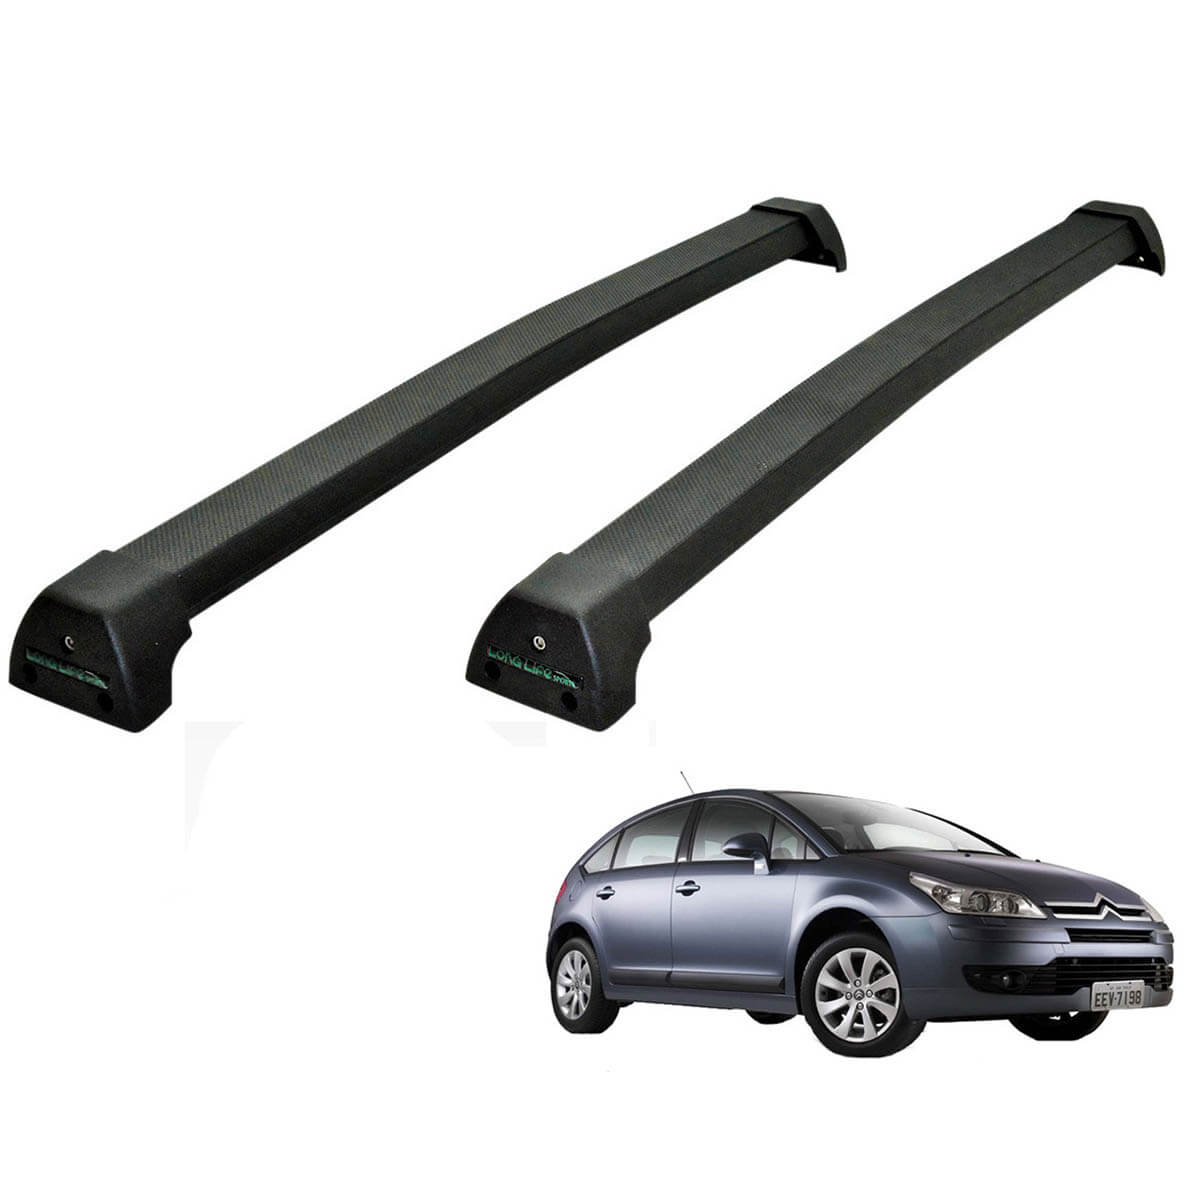 Rack de teto C4 Hatch 2009 a 2014 Long Life Sports preto